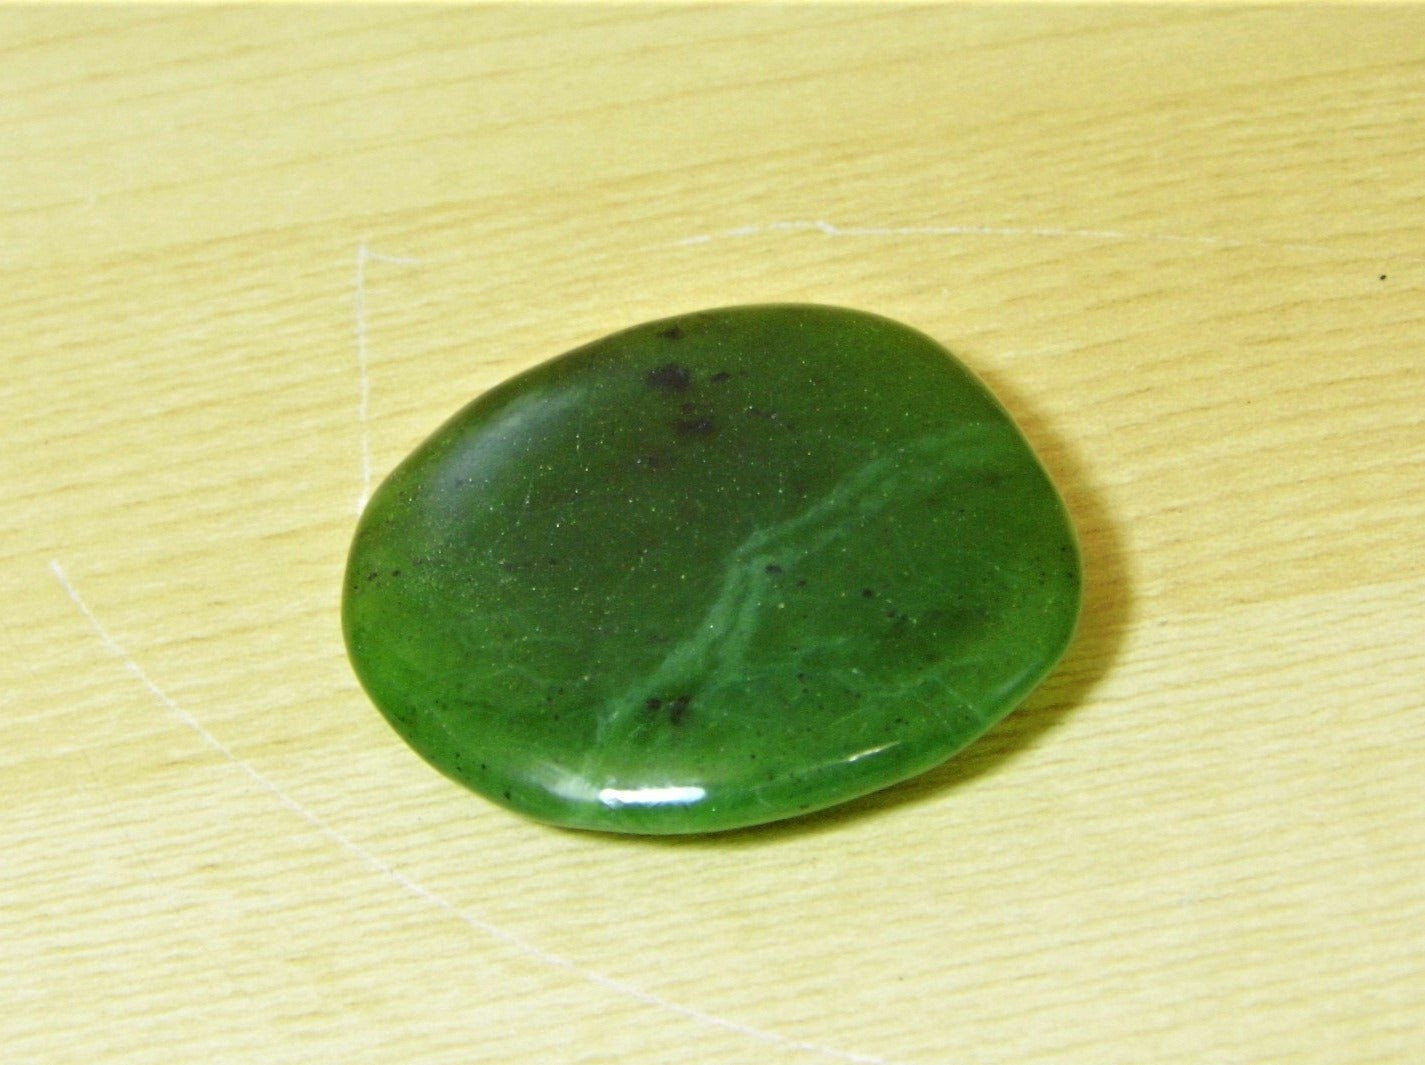 Greenstone (Nephrite Jade) Pocket Stone - Earth's Treasures